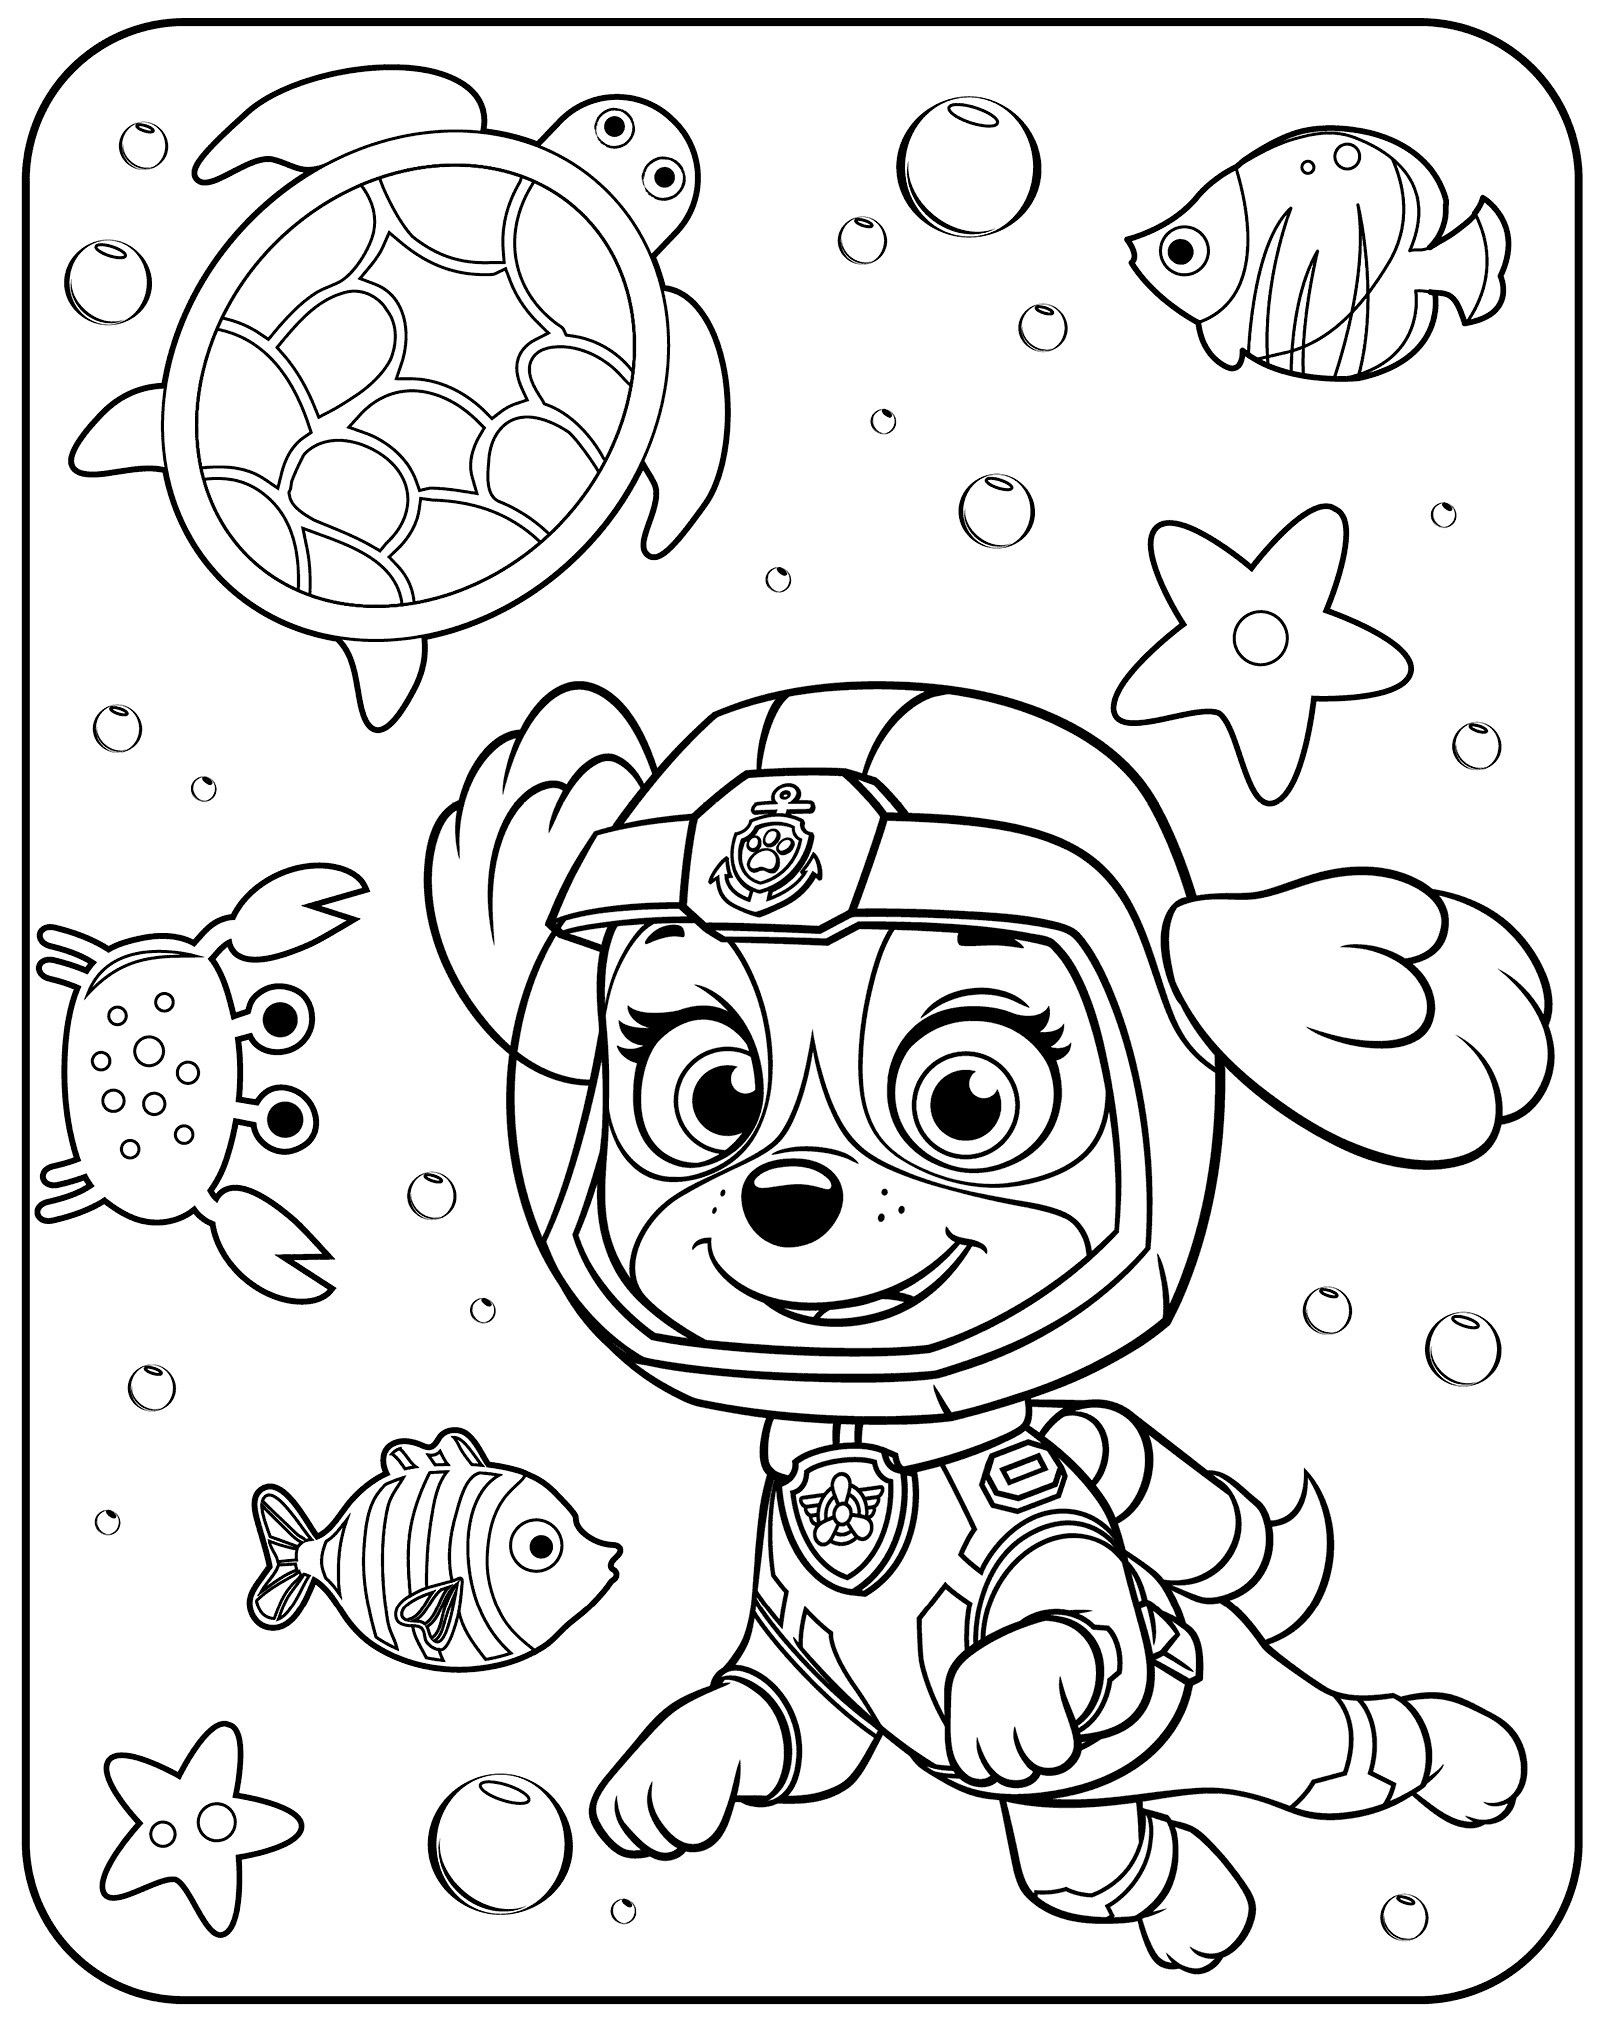 Coloring Book Pages Paw Patrol Fresh Free And Paw Patrol Coloring Pages Paw Patrol Coloring Free Coloring Pages